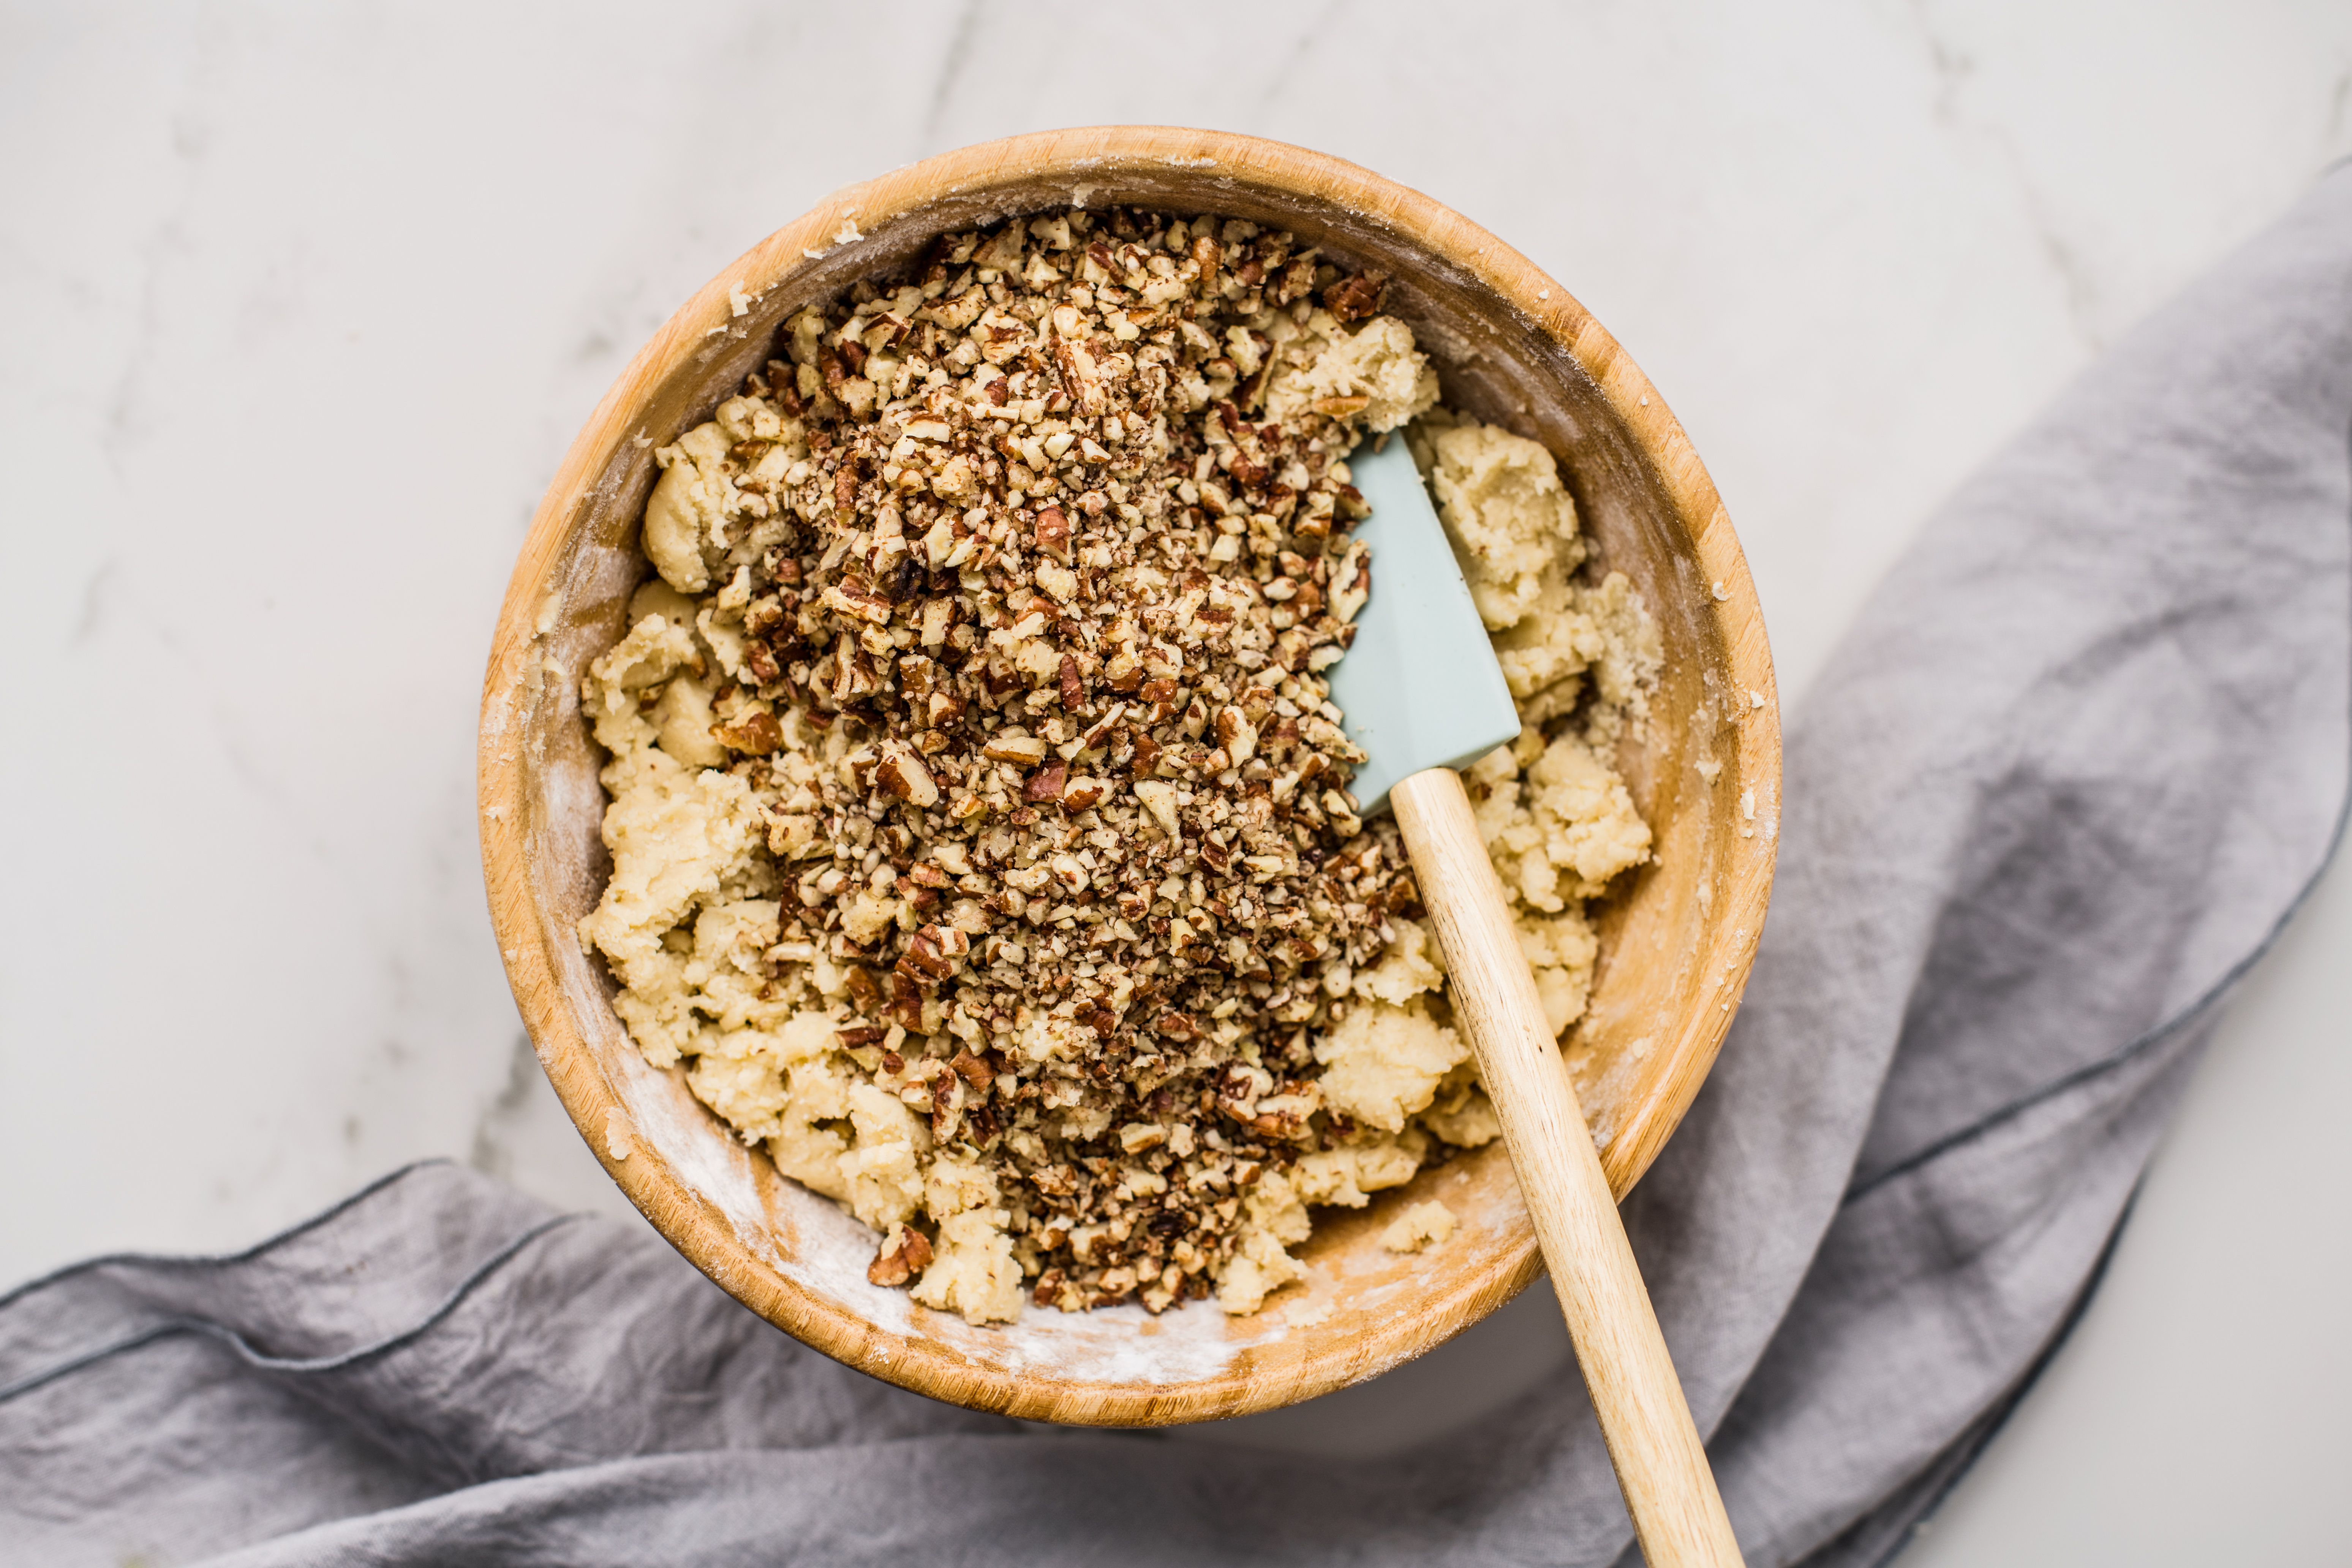 chopped pecans added to dough in bowl